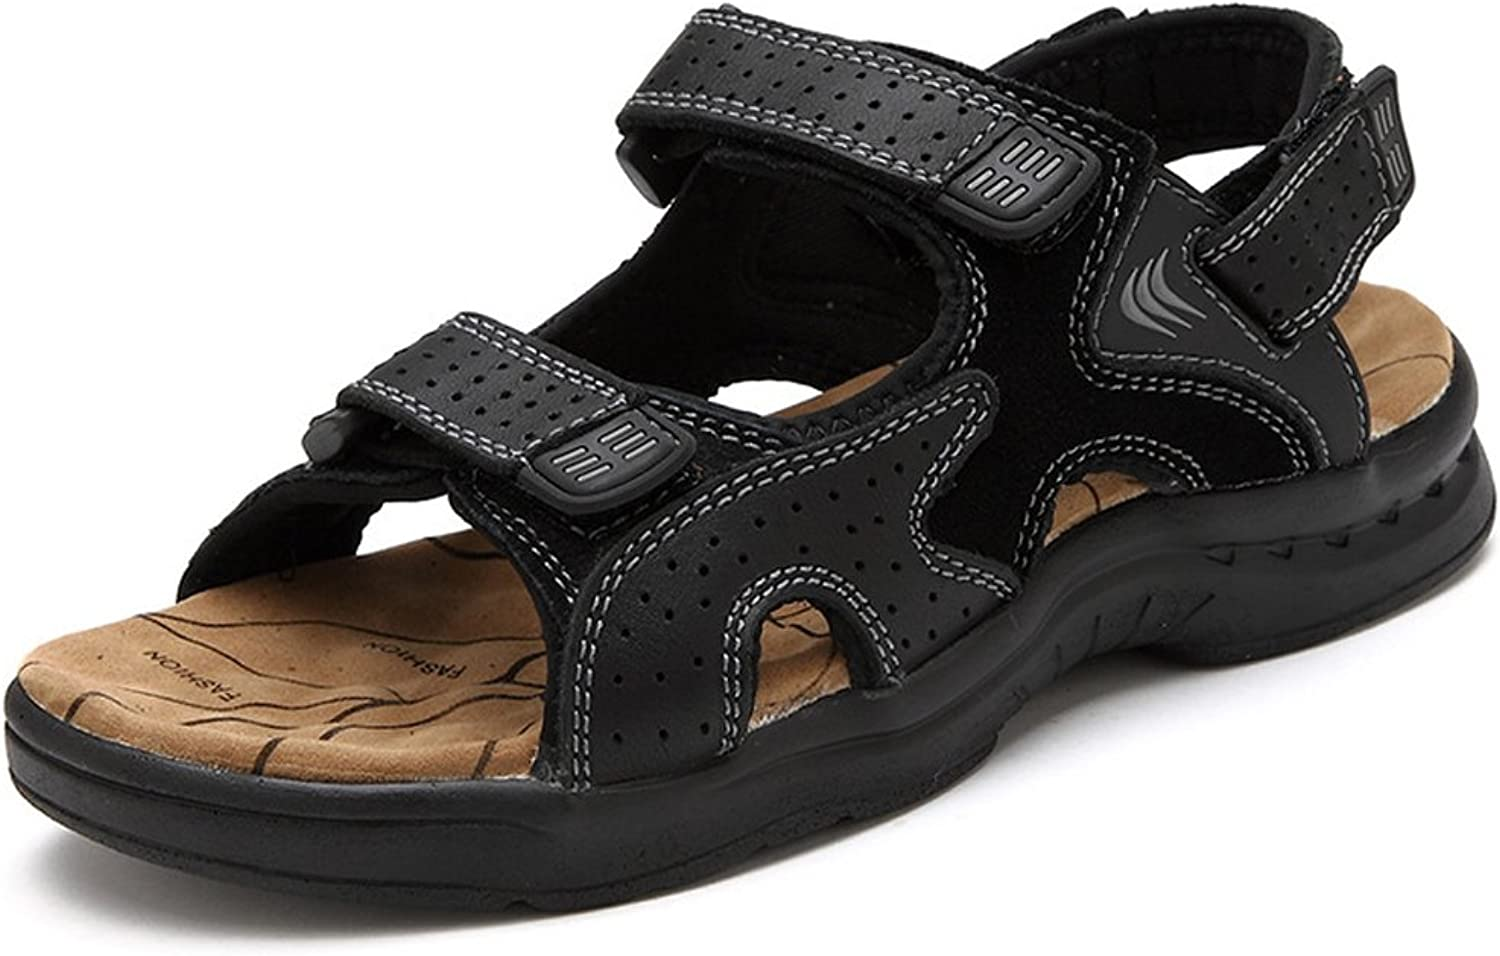 Mobnau Women's Athletic Ankle Strap Beach Hiking Sandals